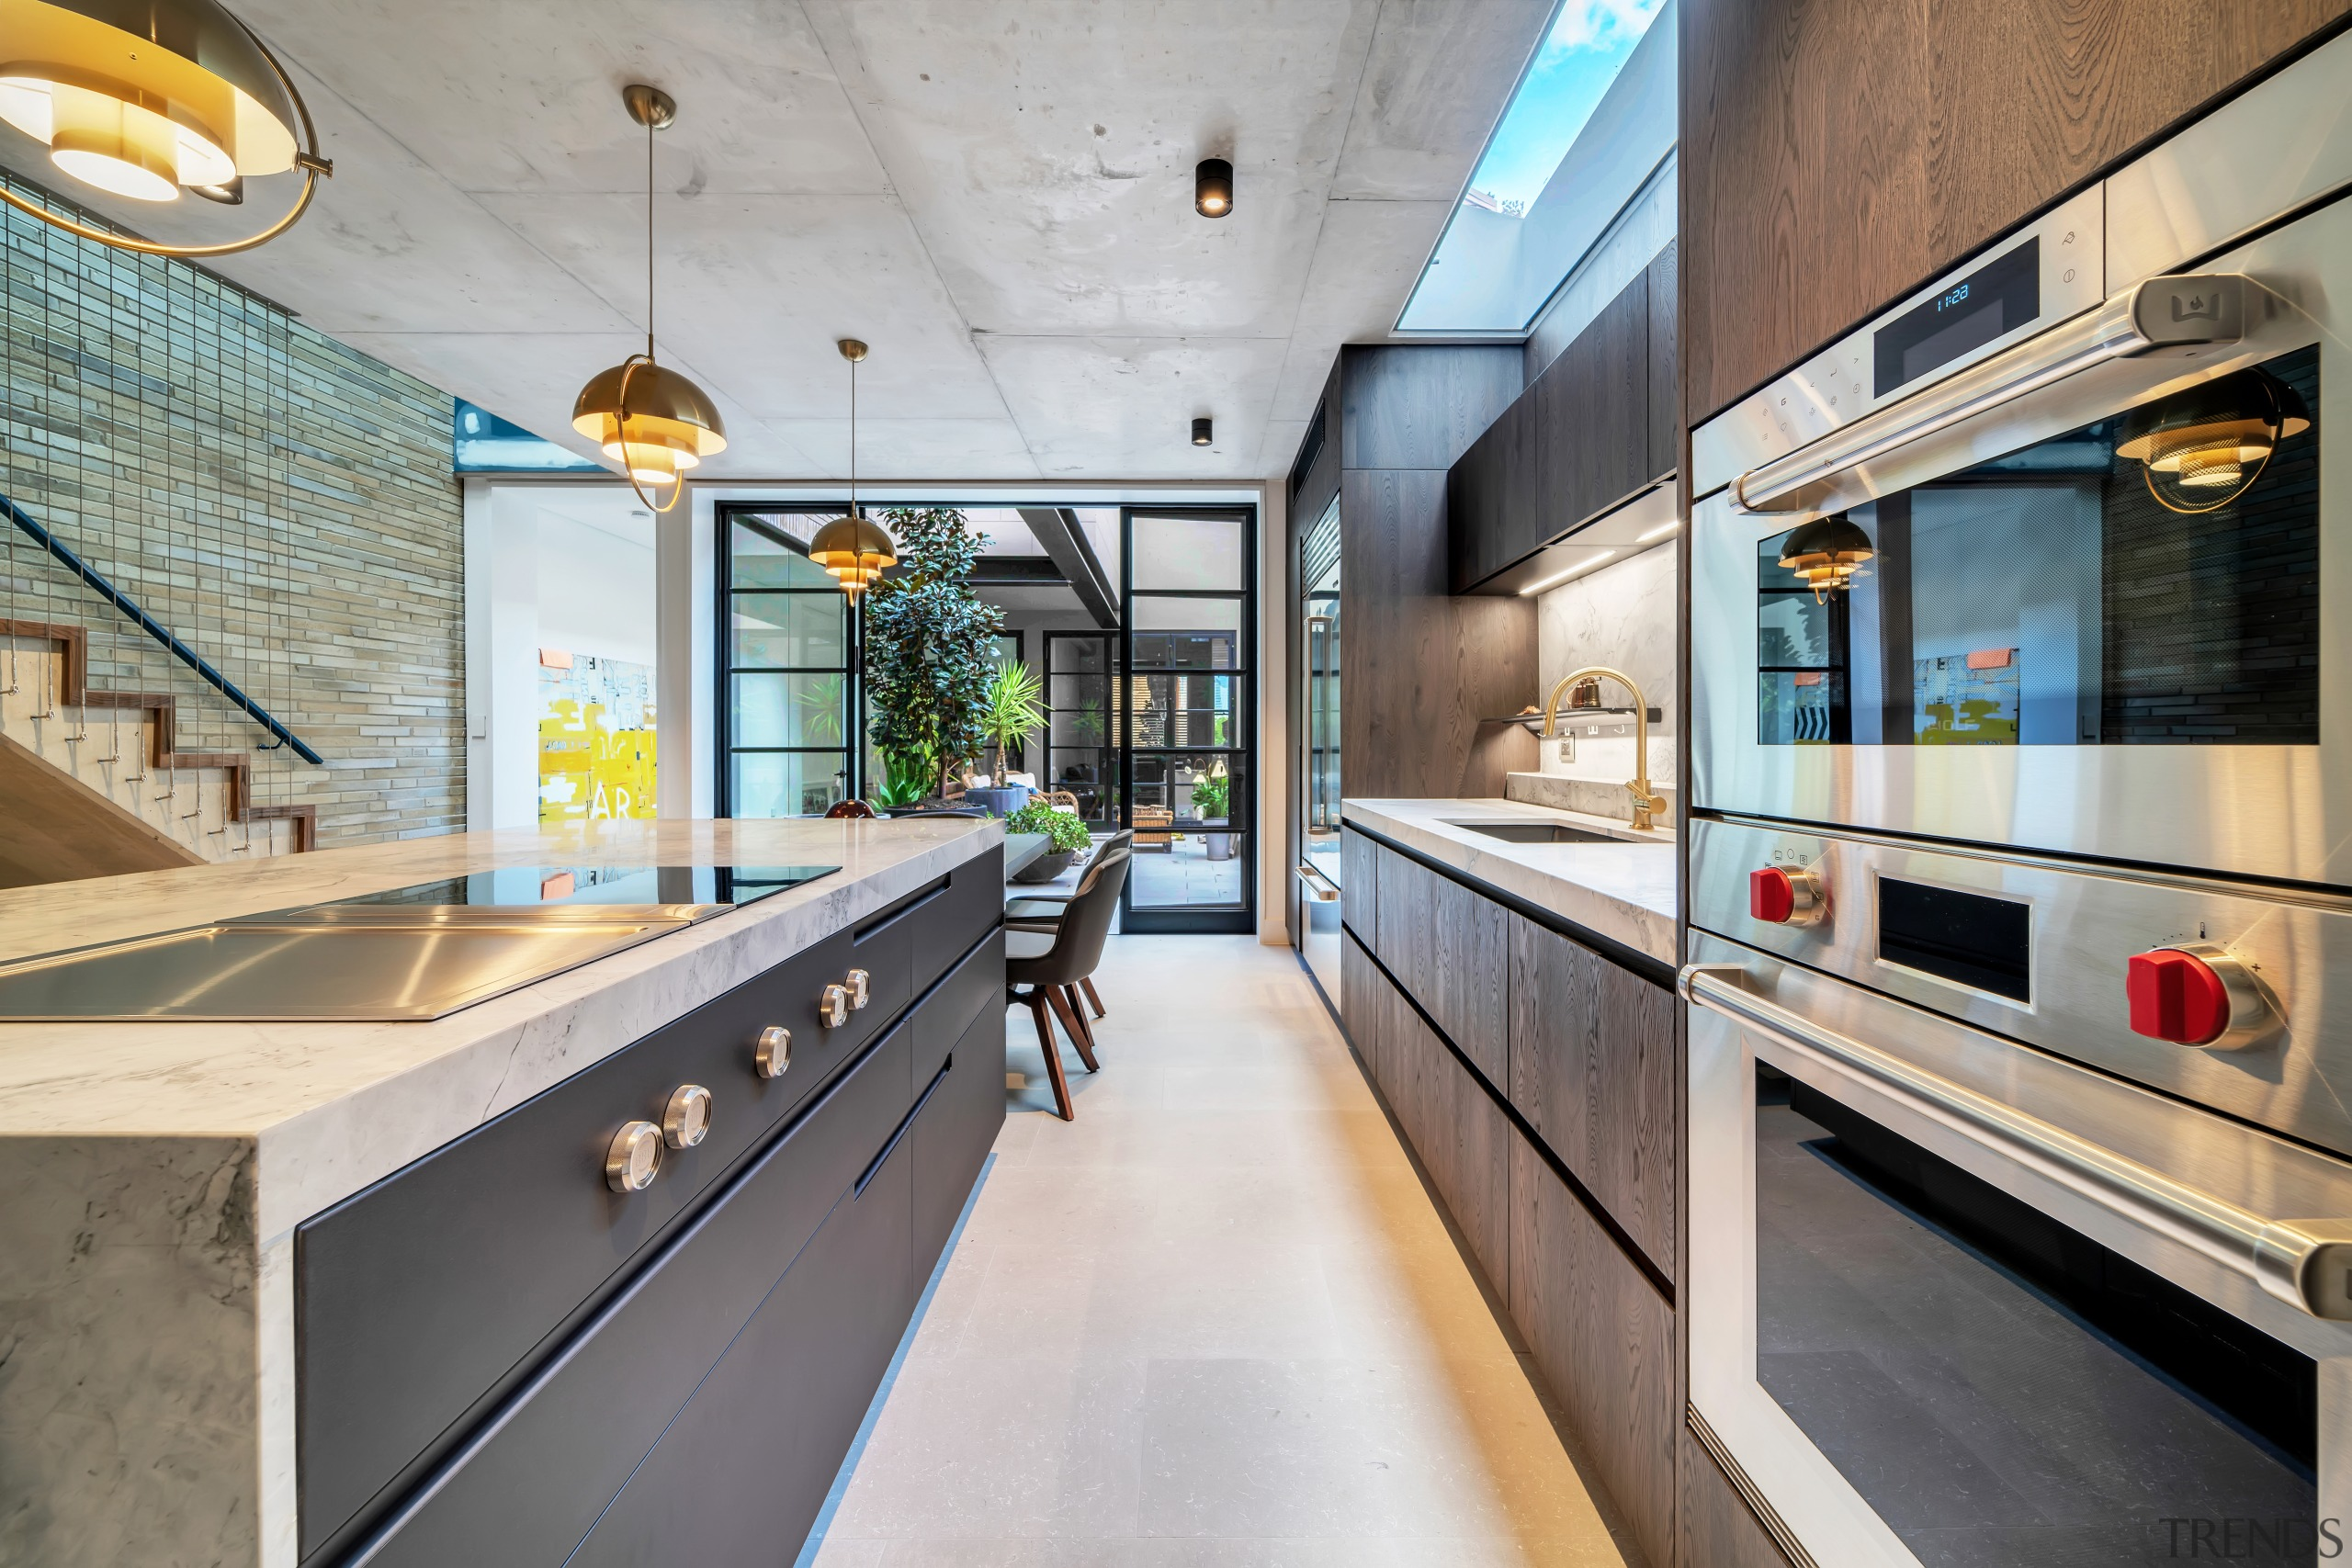 This contemporary kitchen in a reworked terrace house